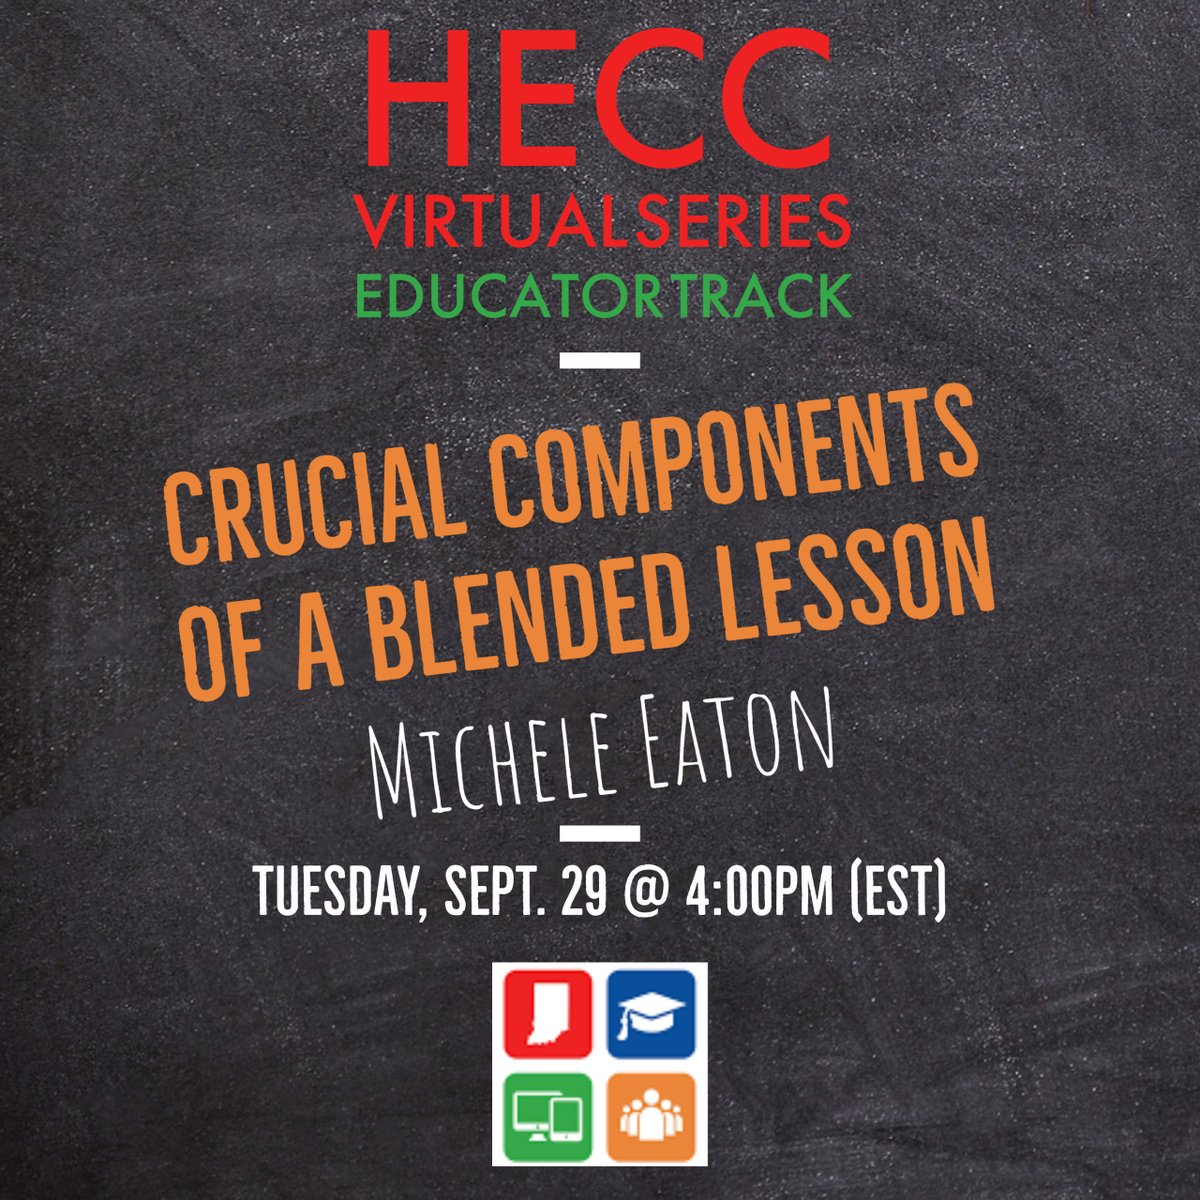 Ready to build on what you have learned about online learning moving from content deliverer to learning architect? Join @micheeaton tomorrow to learn about some key elements of a personalized blended learning experience. Click the link to join tomorrow https://t.co/PzkQ2b7DpJ https://t.co/1UKucF020m